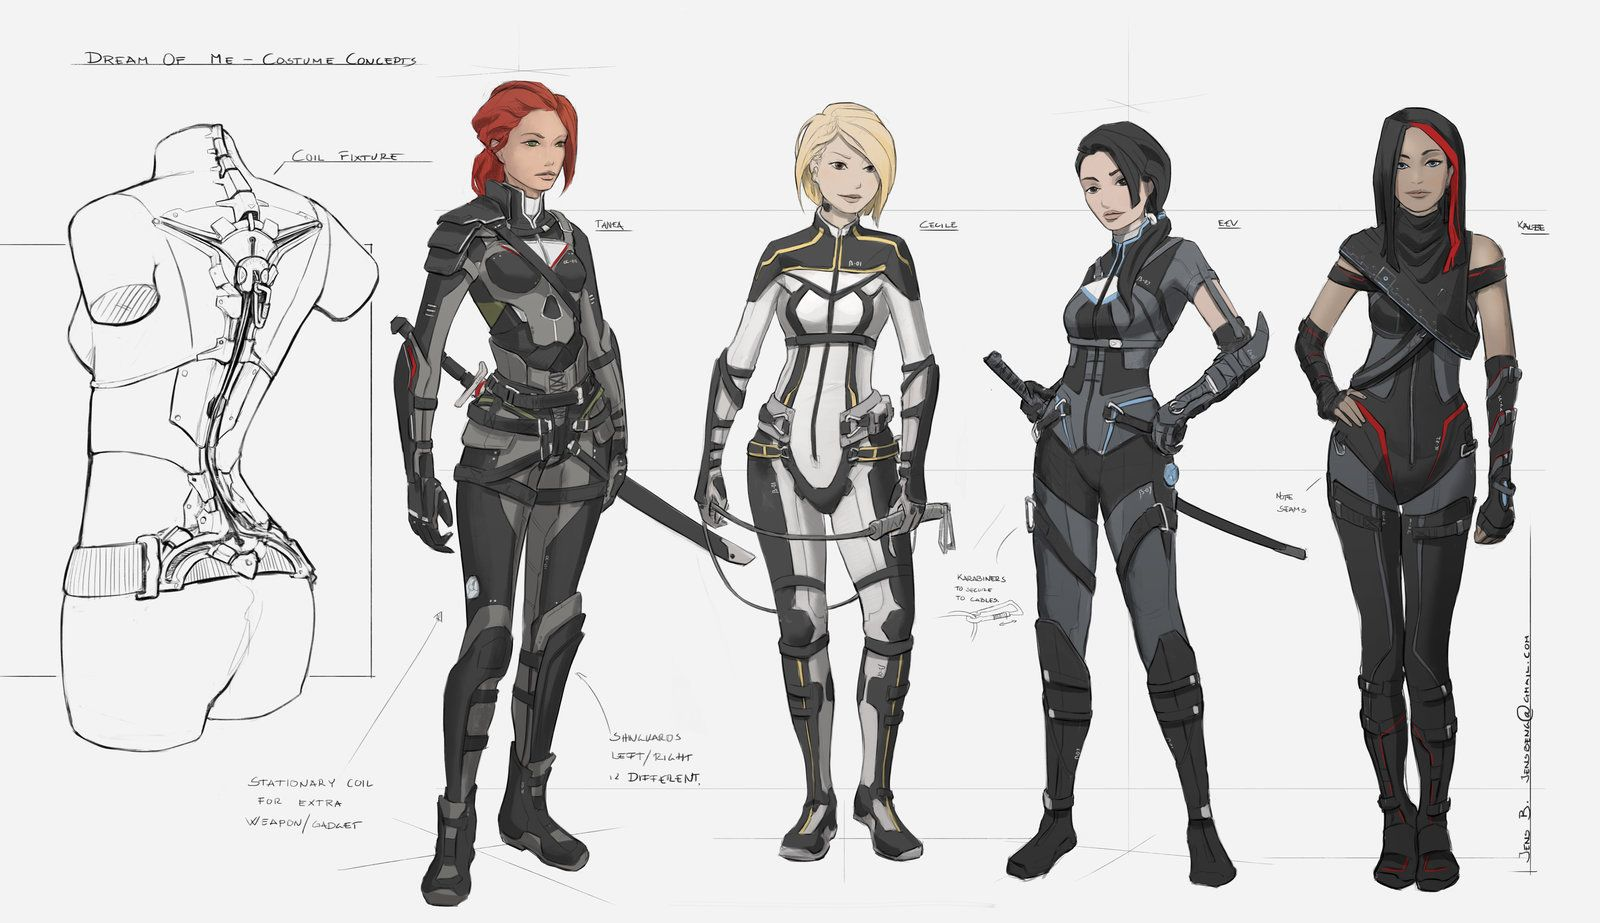 Dream Of Me Character Lineup By Rubiskoviantart On